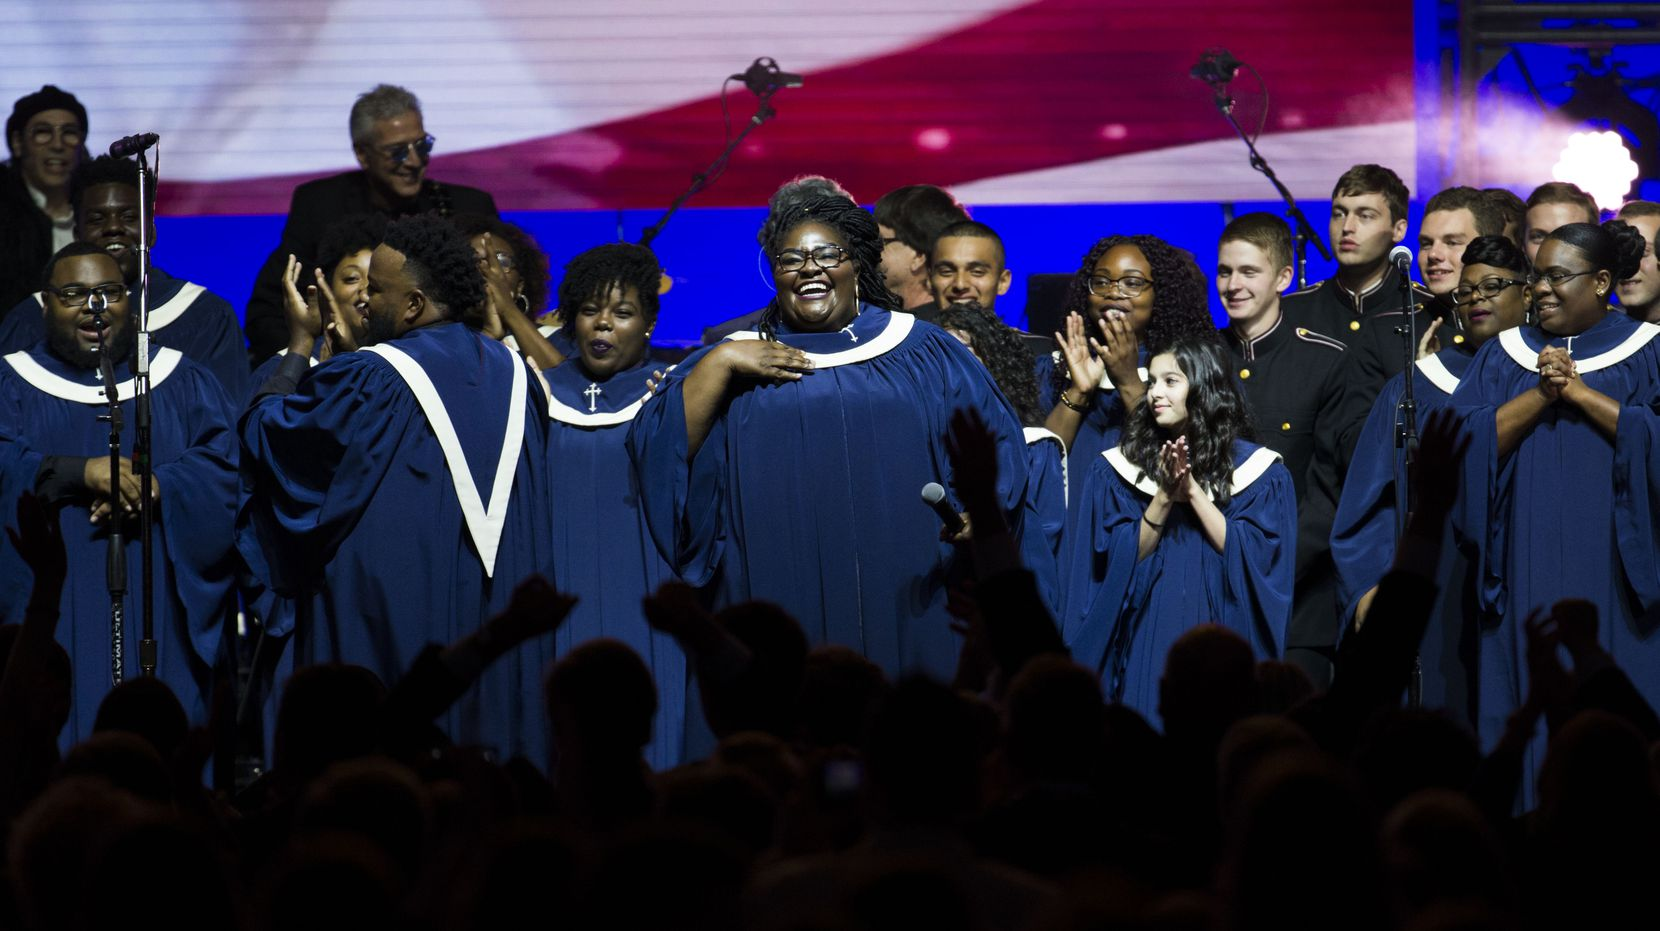 The Houston Gospel Choir performs during Deep from the Heart: The One America Appeal Concert.